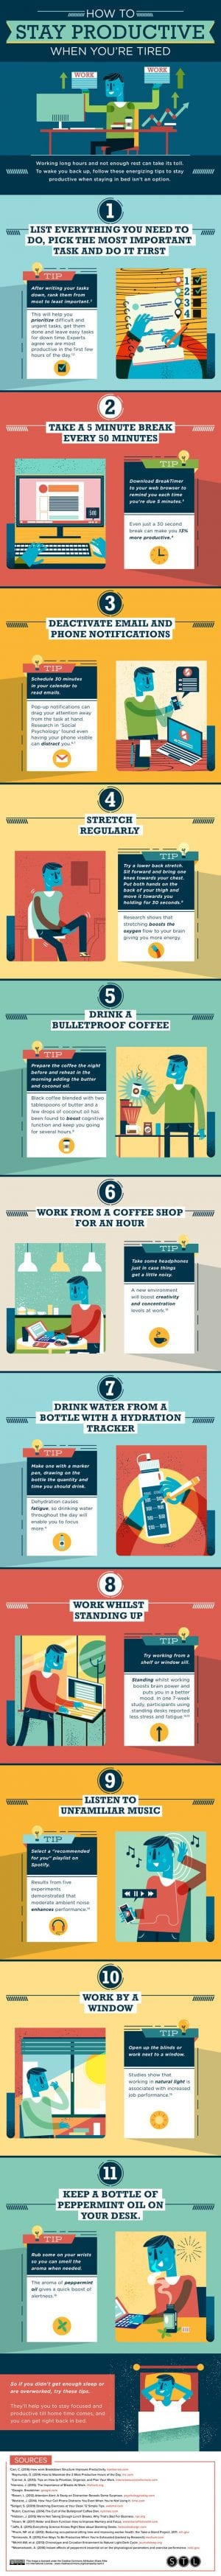 How To Stay Productive When You're Tired